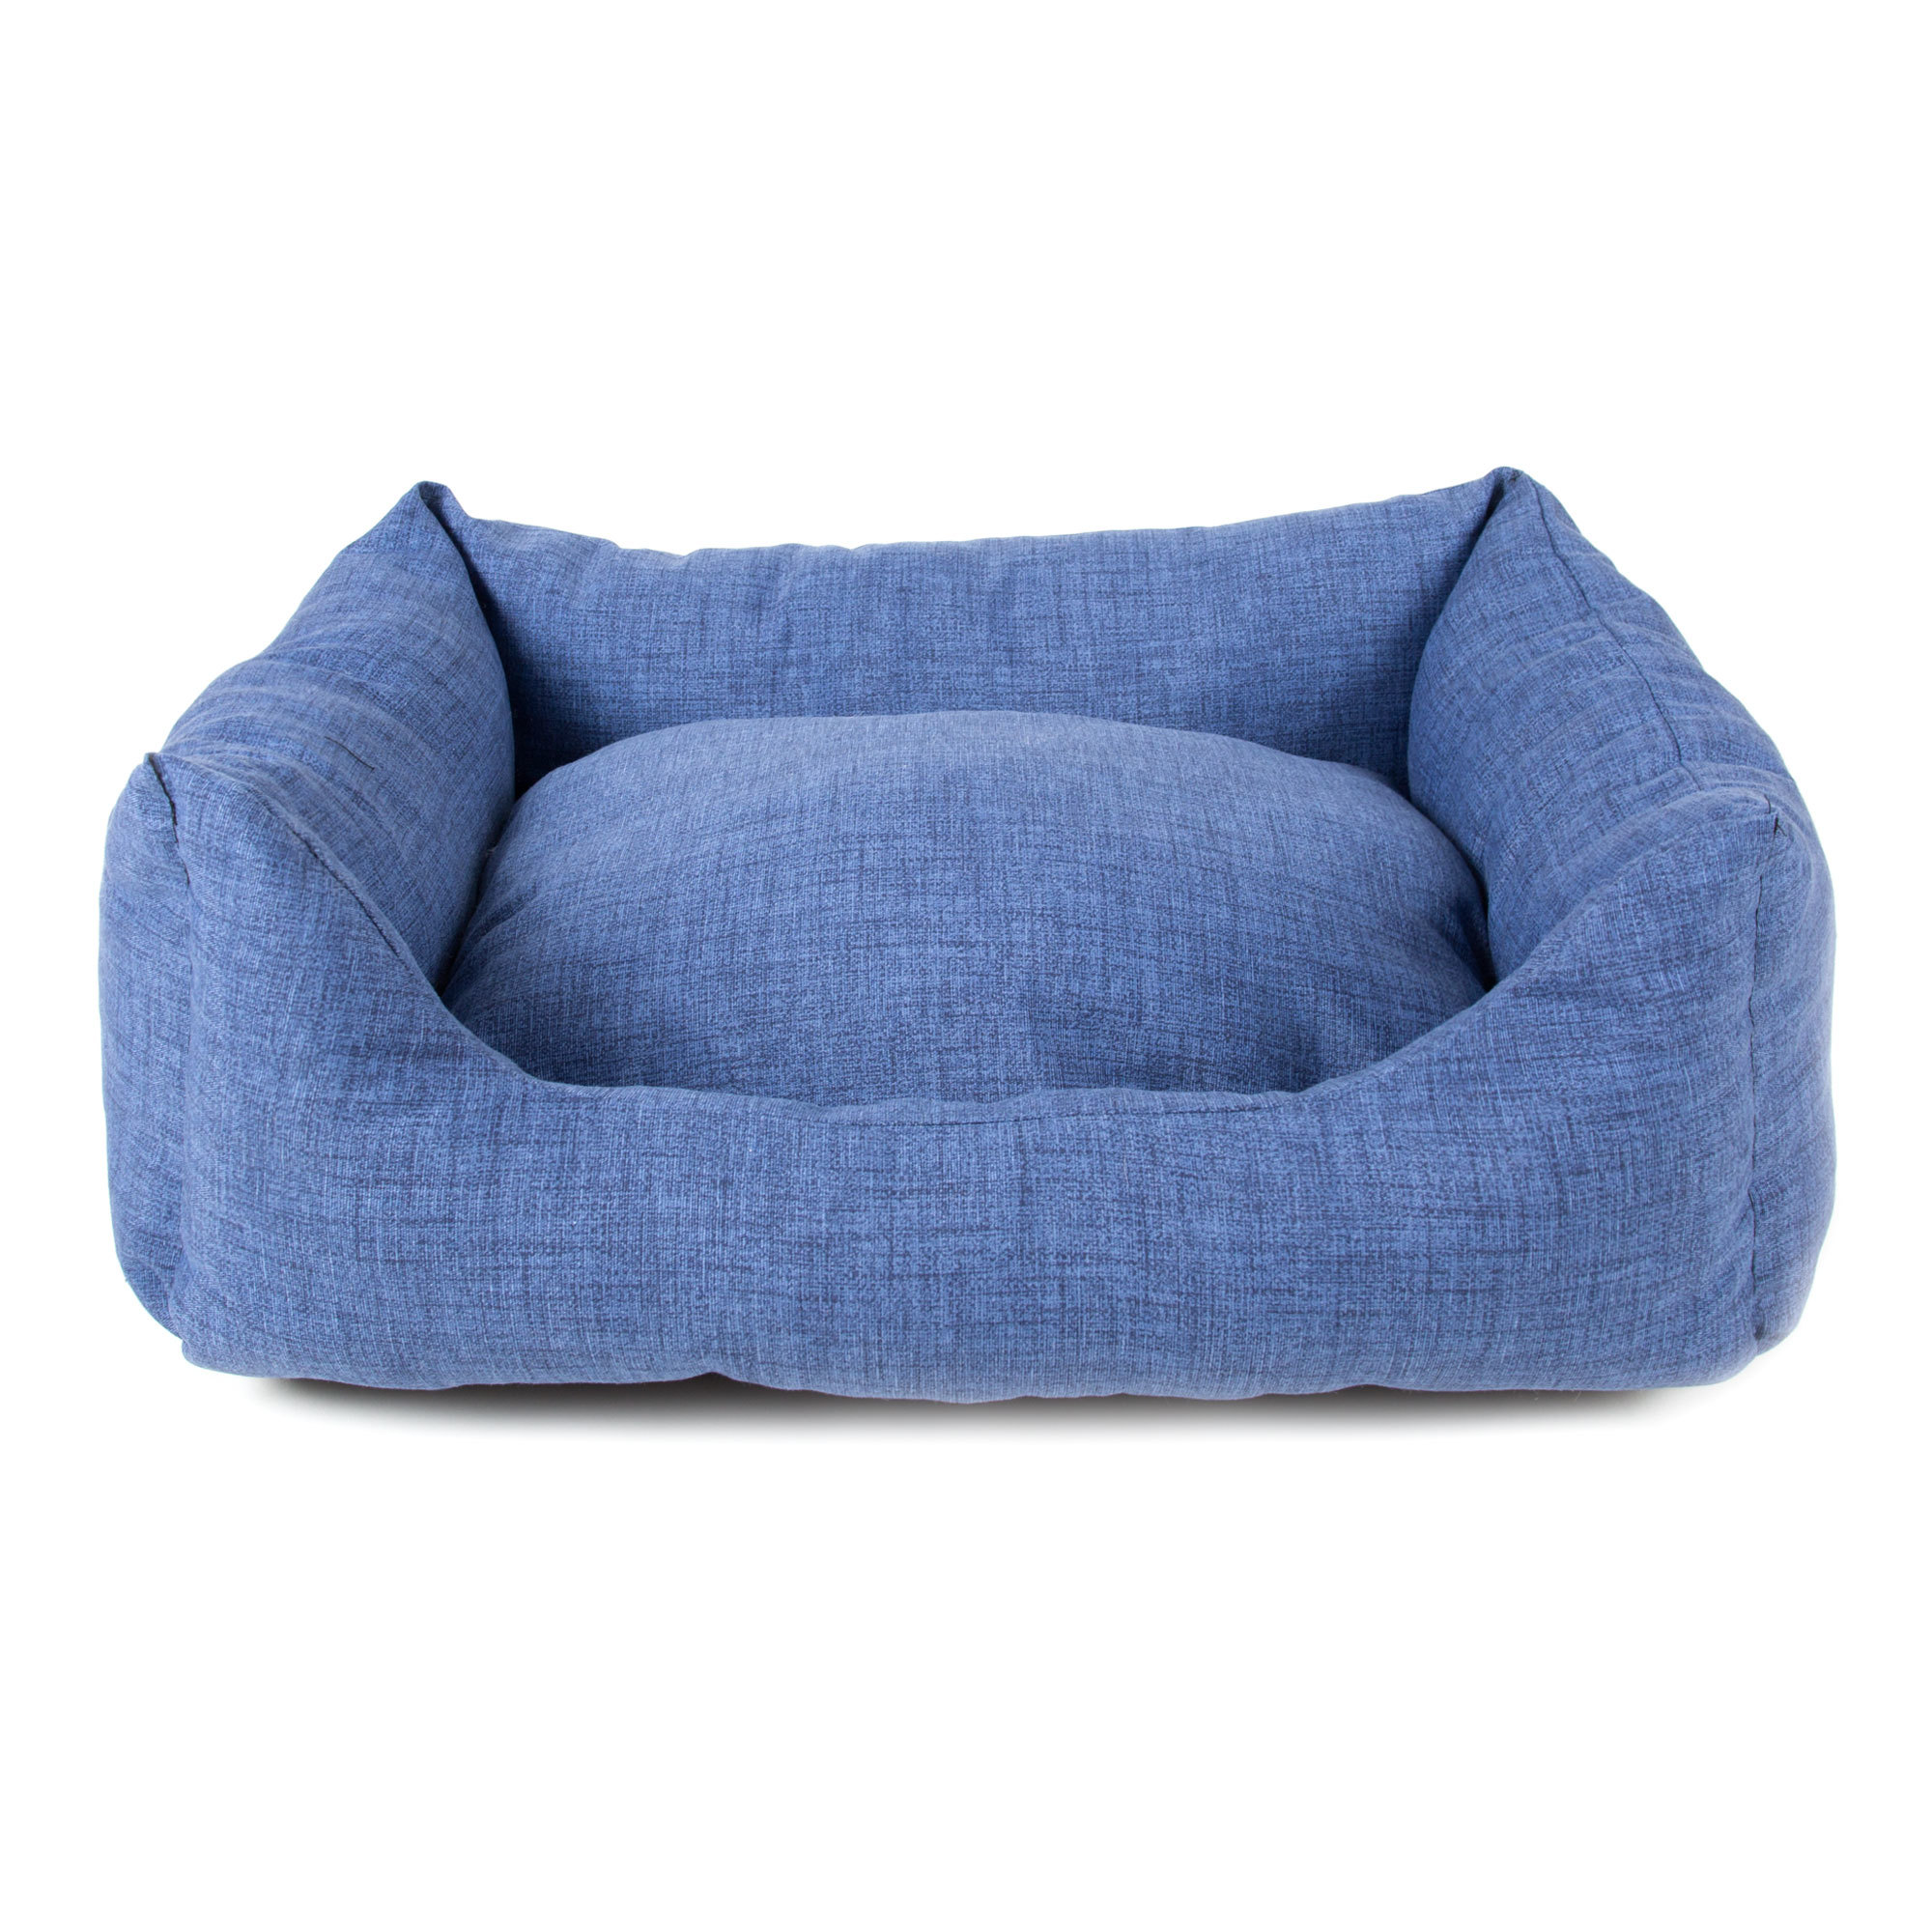 dog puppy beds large small luxury cushions medicanimal com